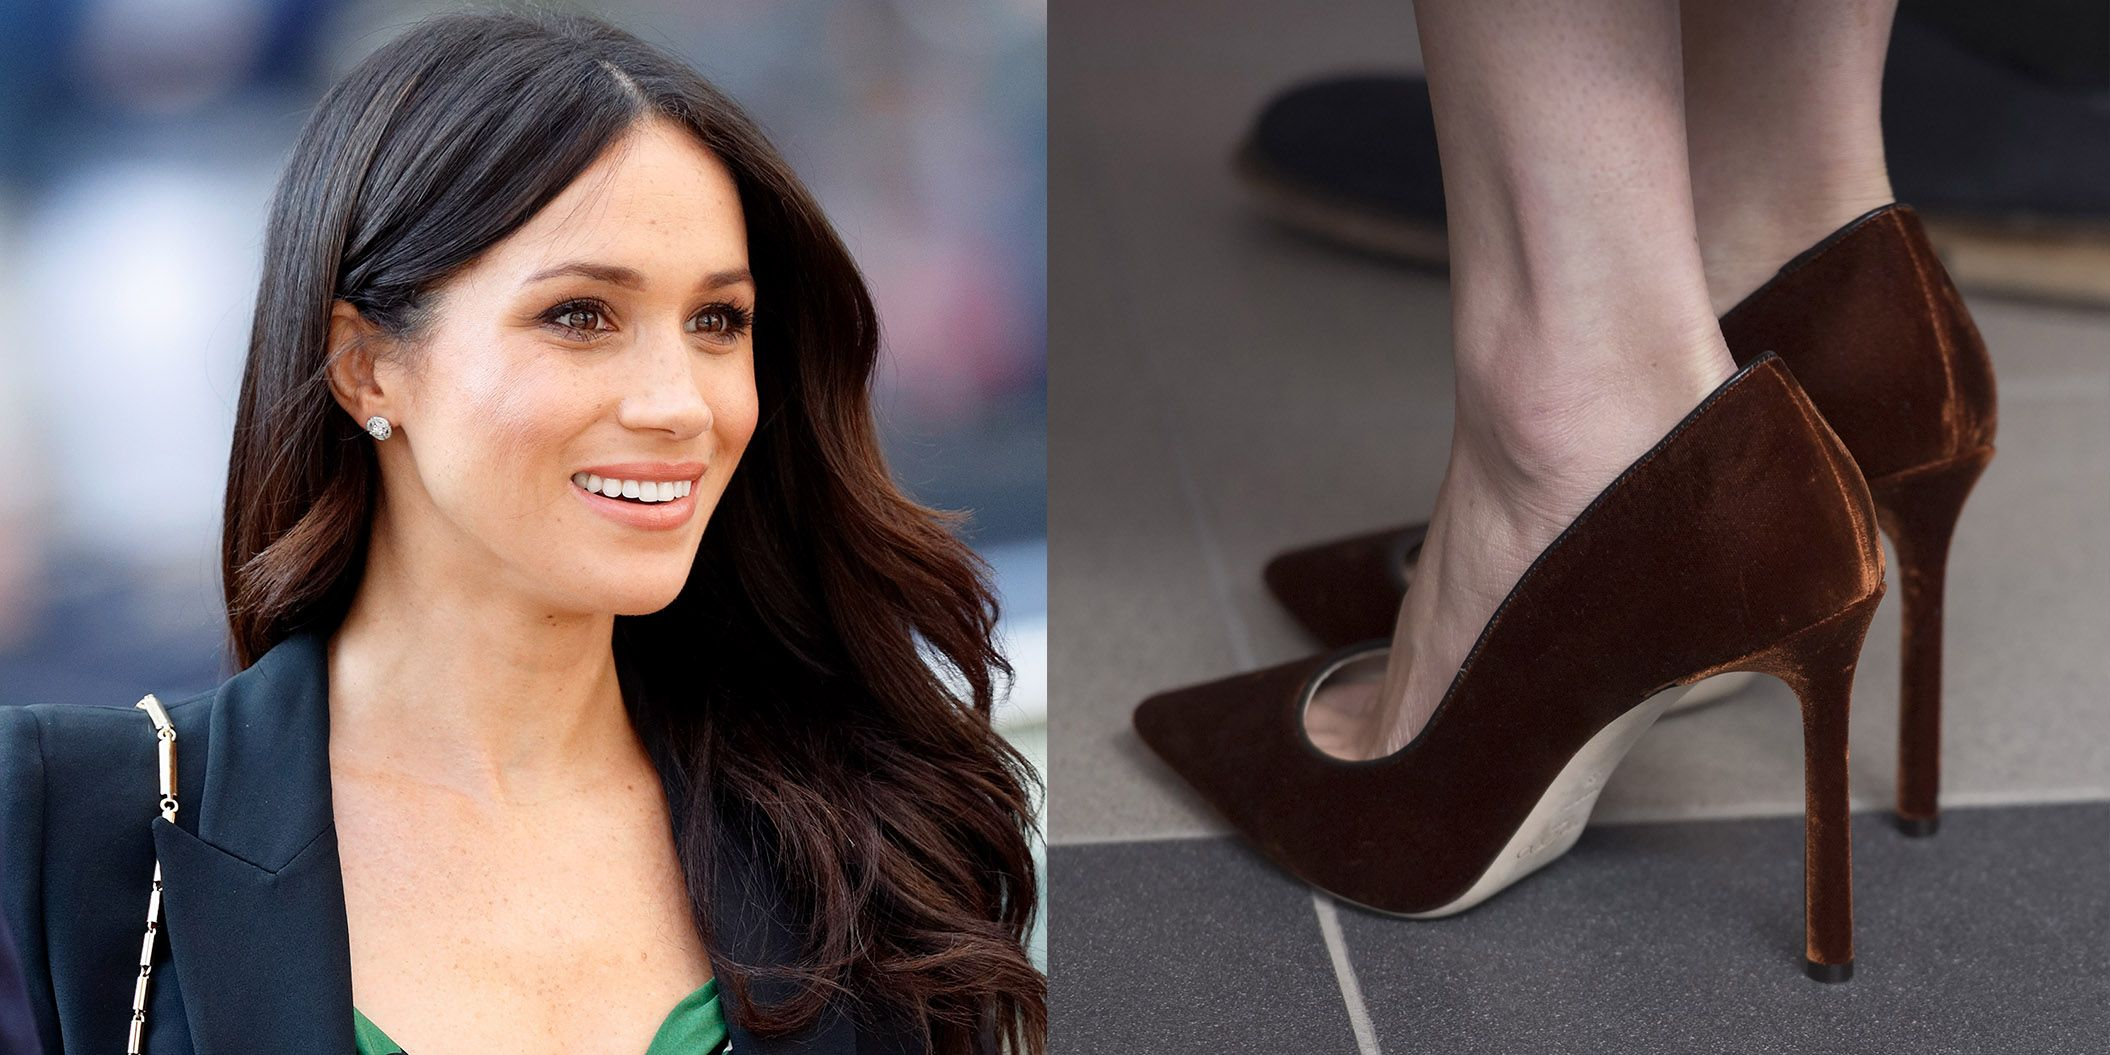 a8861bfb7b6a Meghan Markle Wears Shoes That Are Too Big for Her - Duchess of ...